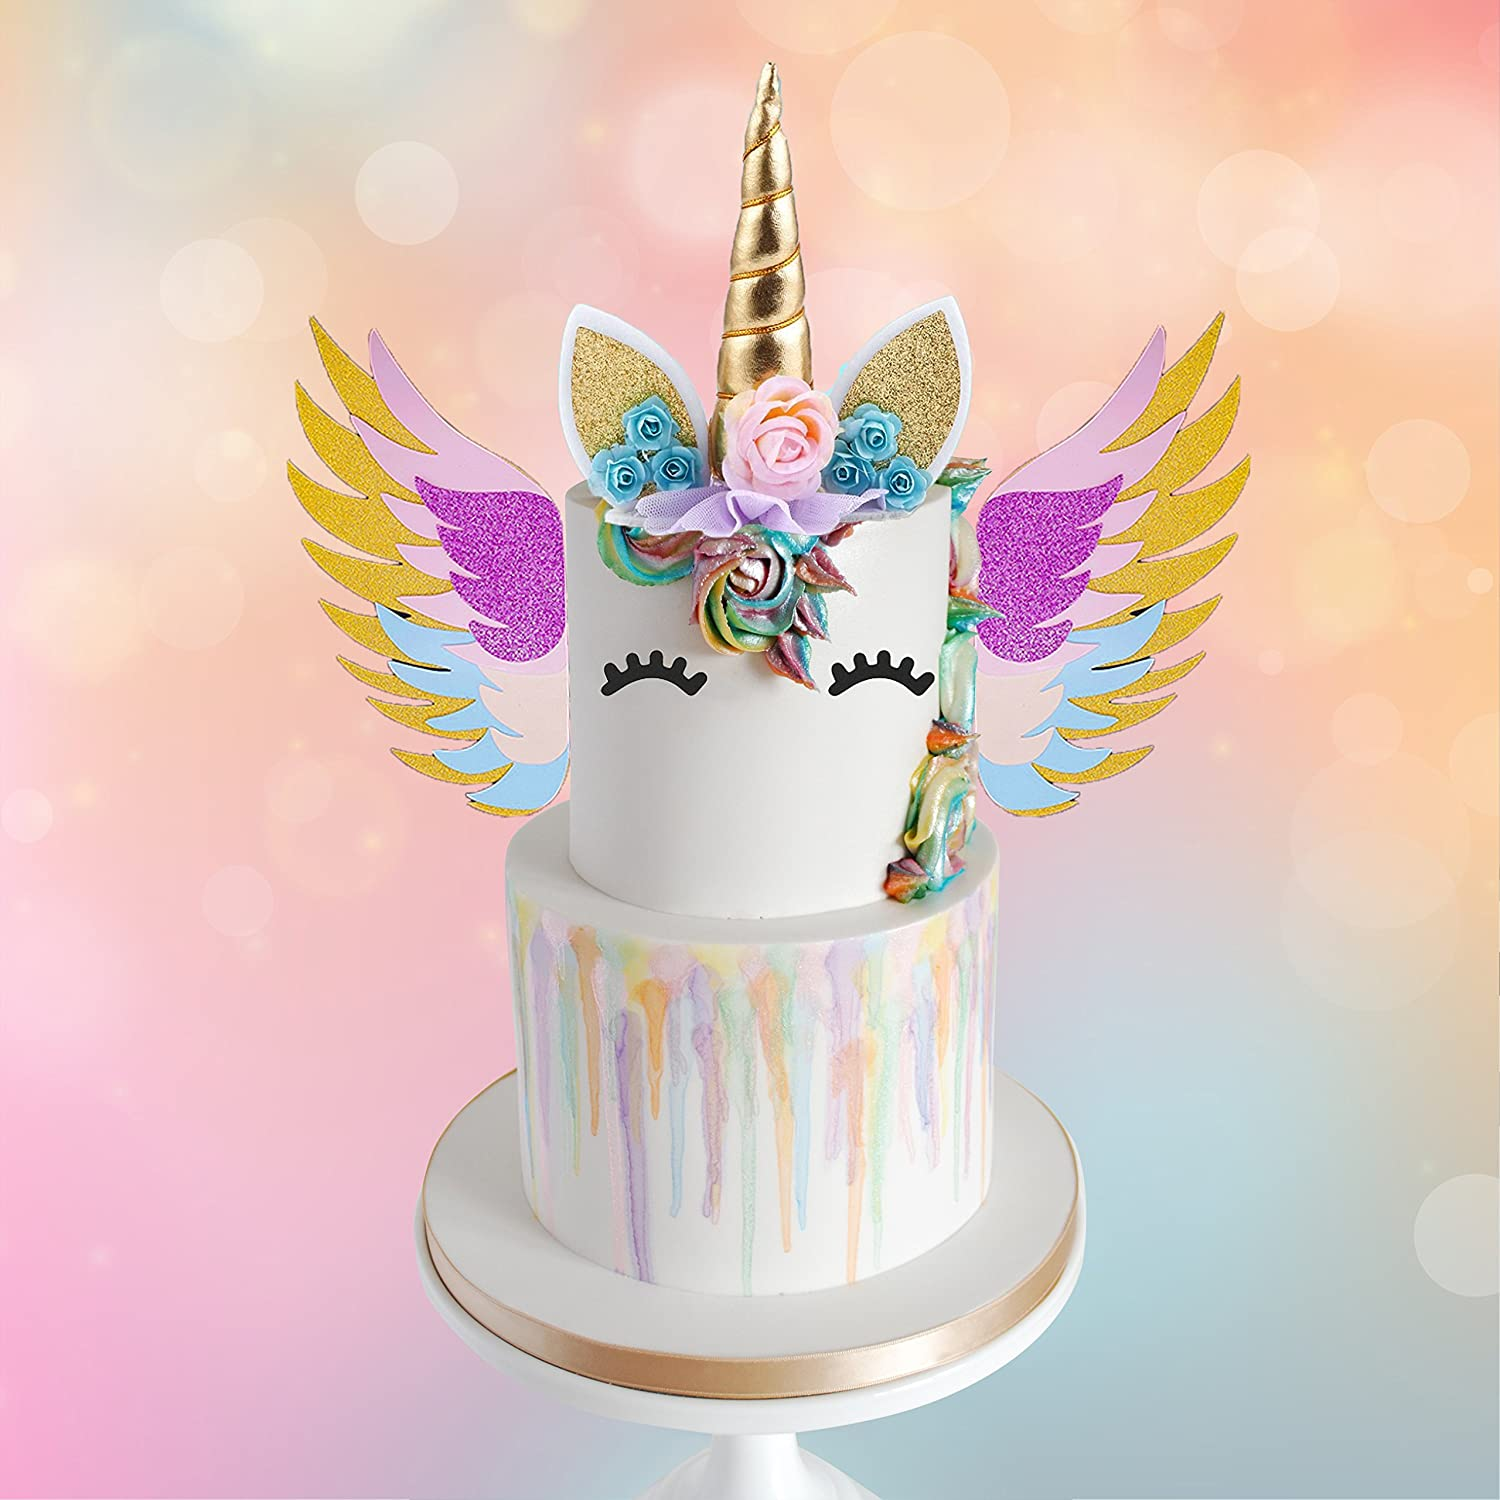 MORDUN Unicorn Cake Topper Gold Set - Reusable Glitter Unicorn Horn, Ears,  Eyelashes, Flowers, Wings - Unicorn Party Decoration for Birthday Party,